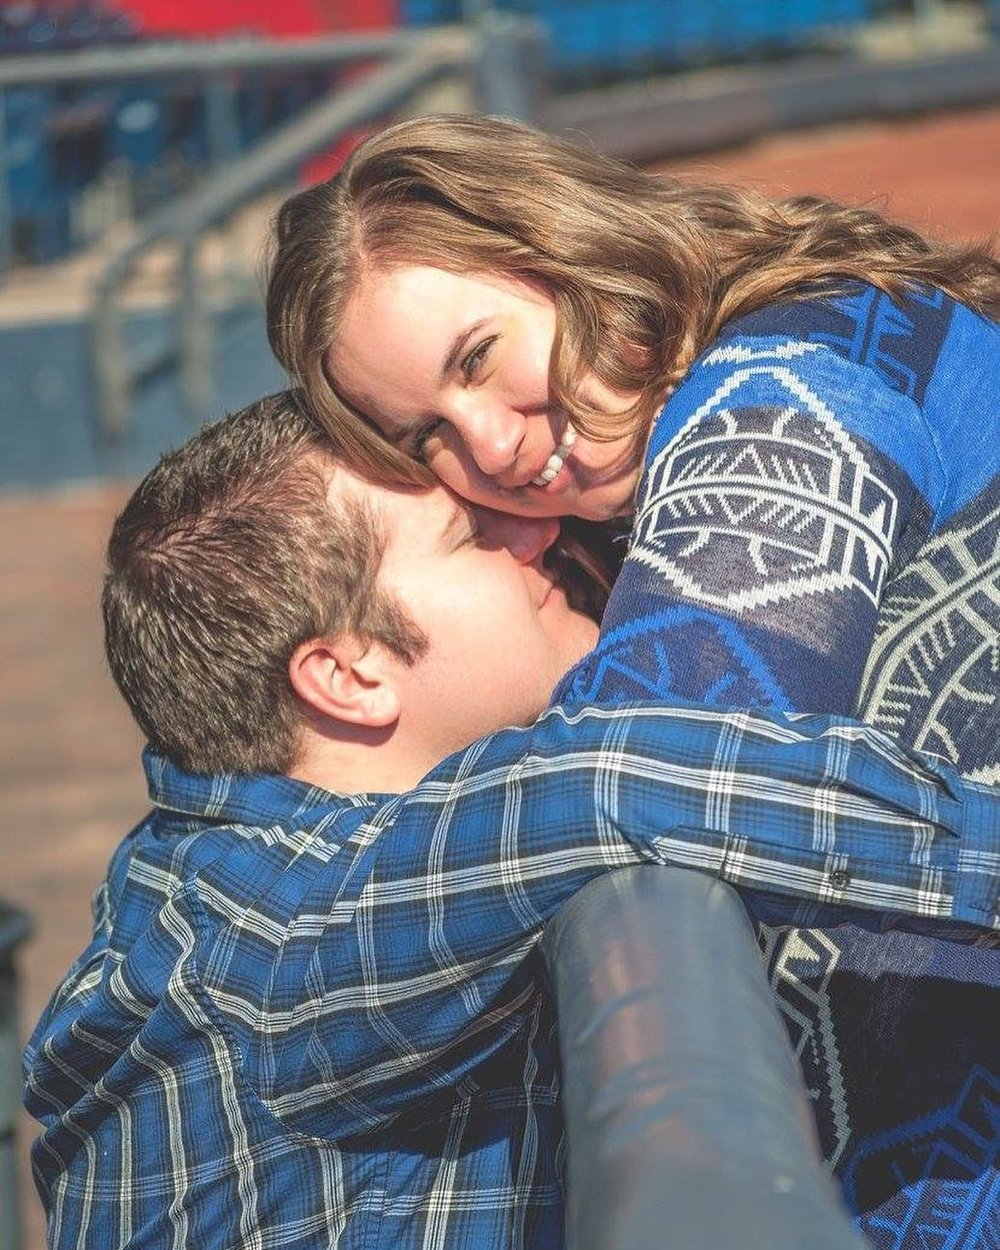 A man in blue kisses a woman in blue in the baseball dugout at Modern Woodmen Park